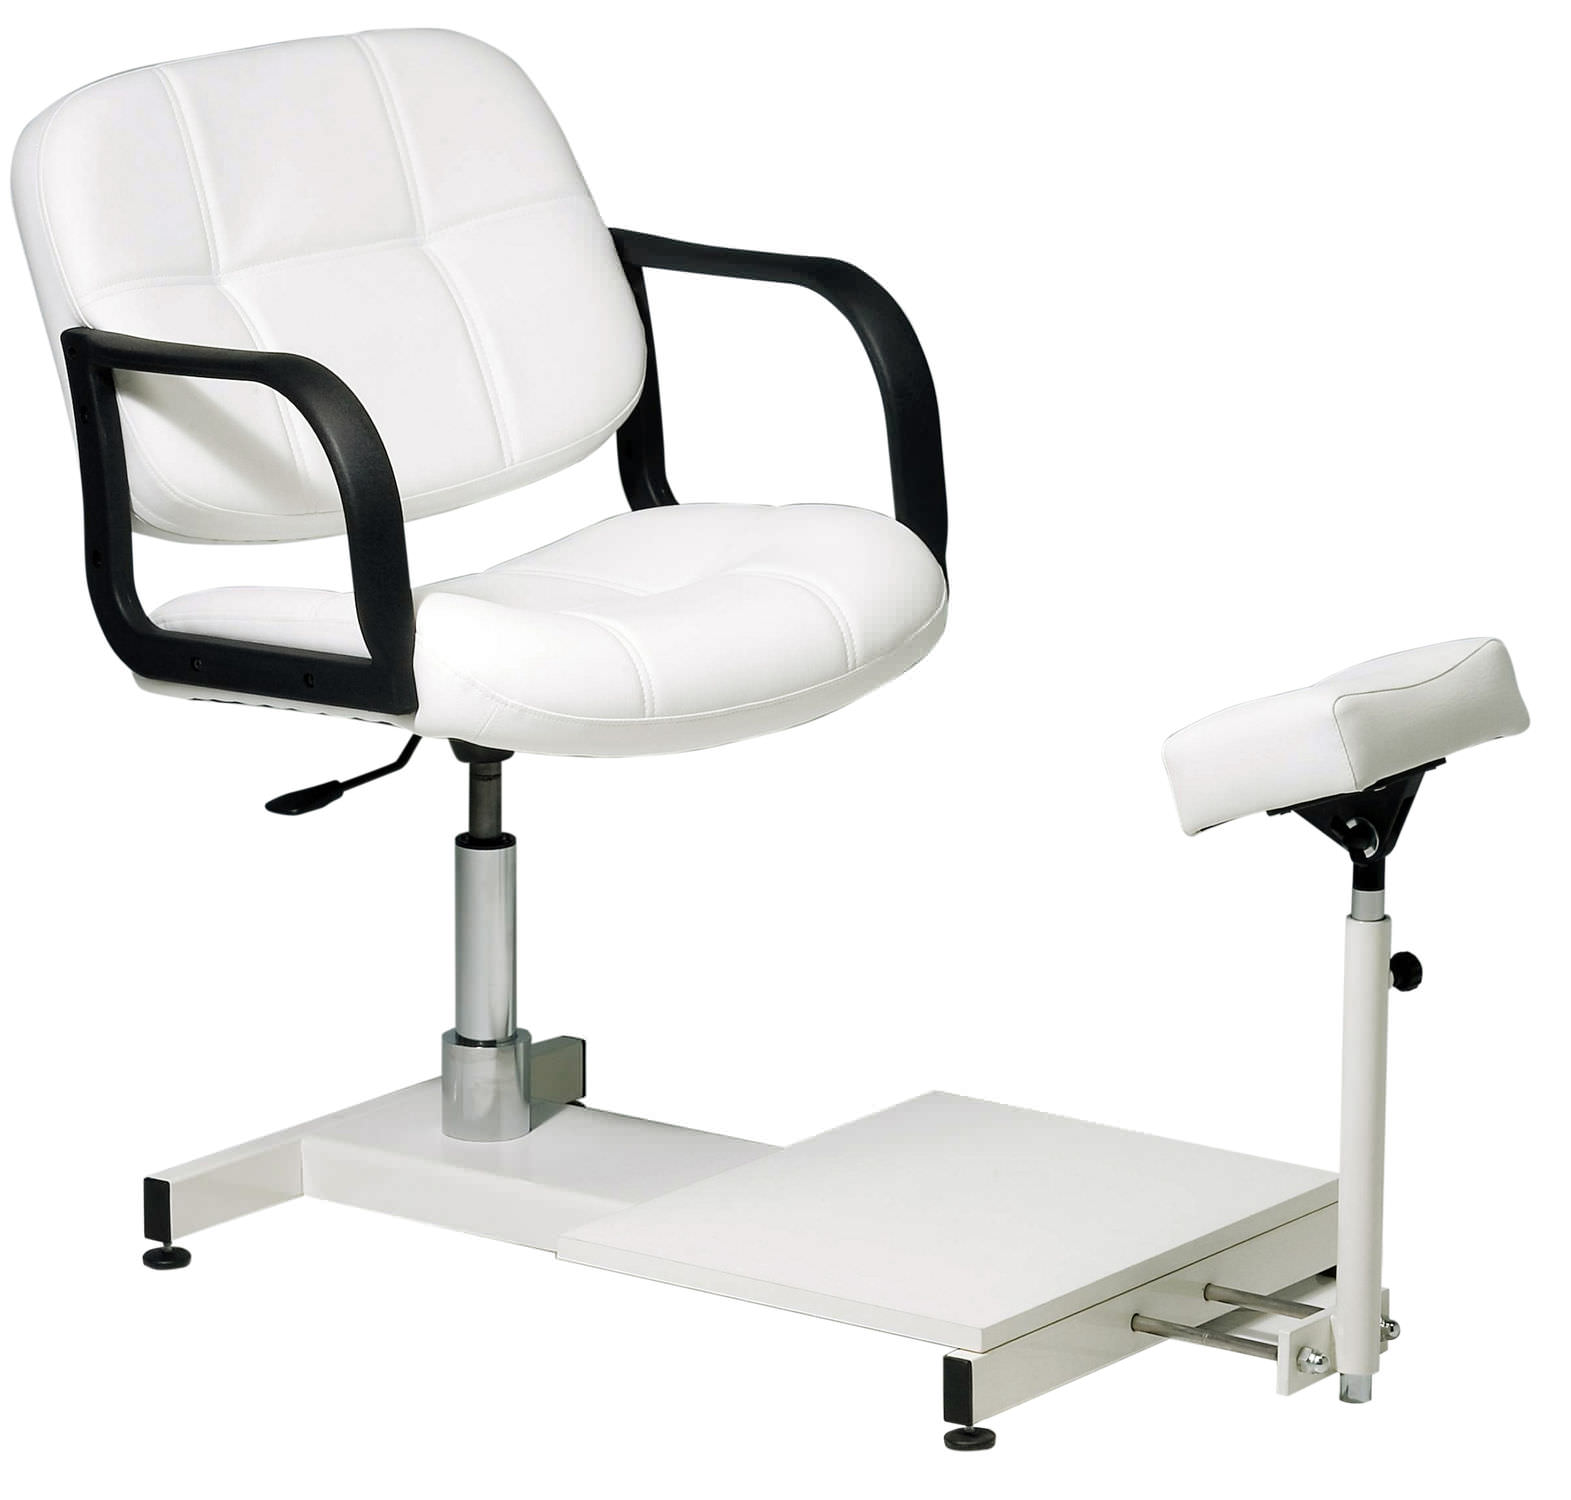 cheap pedicure chairs chair covers kmart australia vinyl with hydraulic pump confort bmp srl